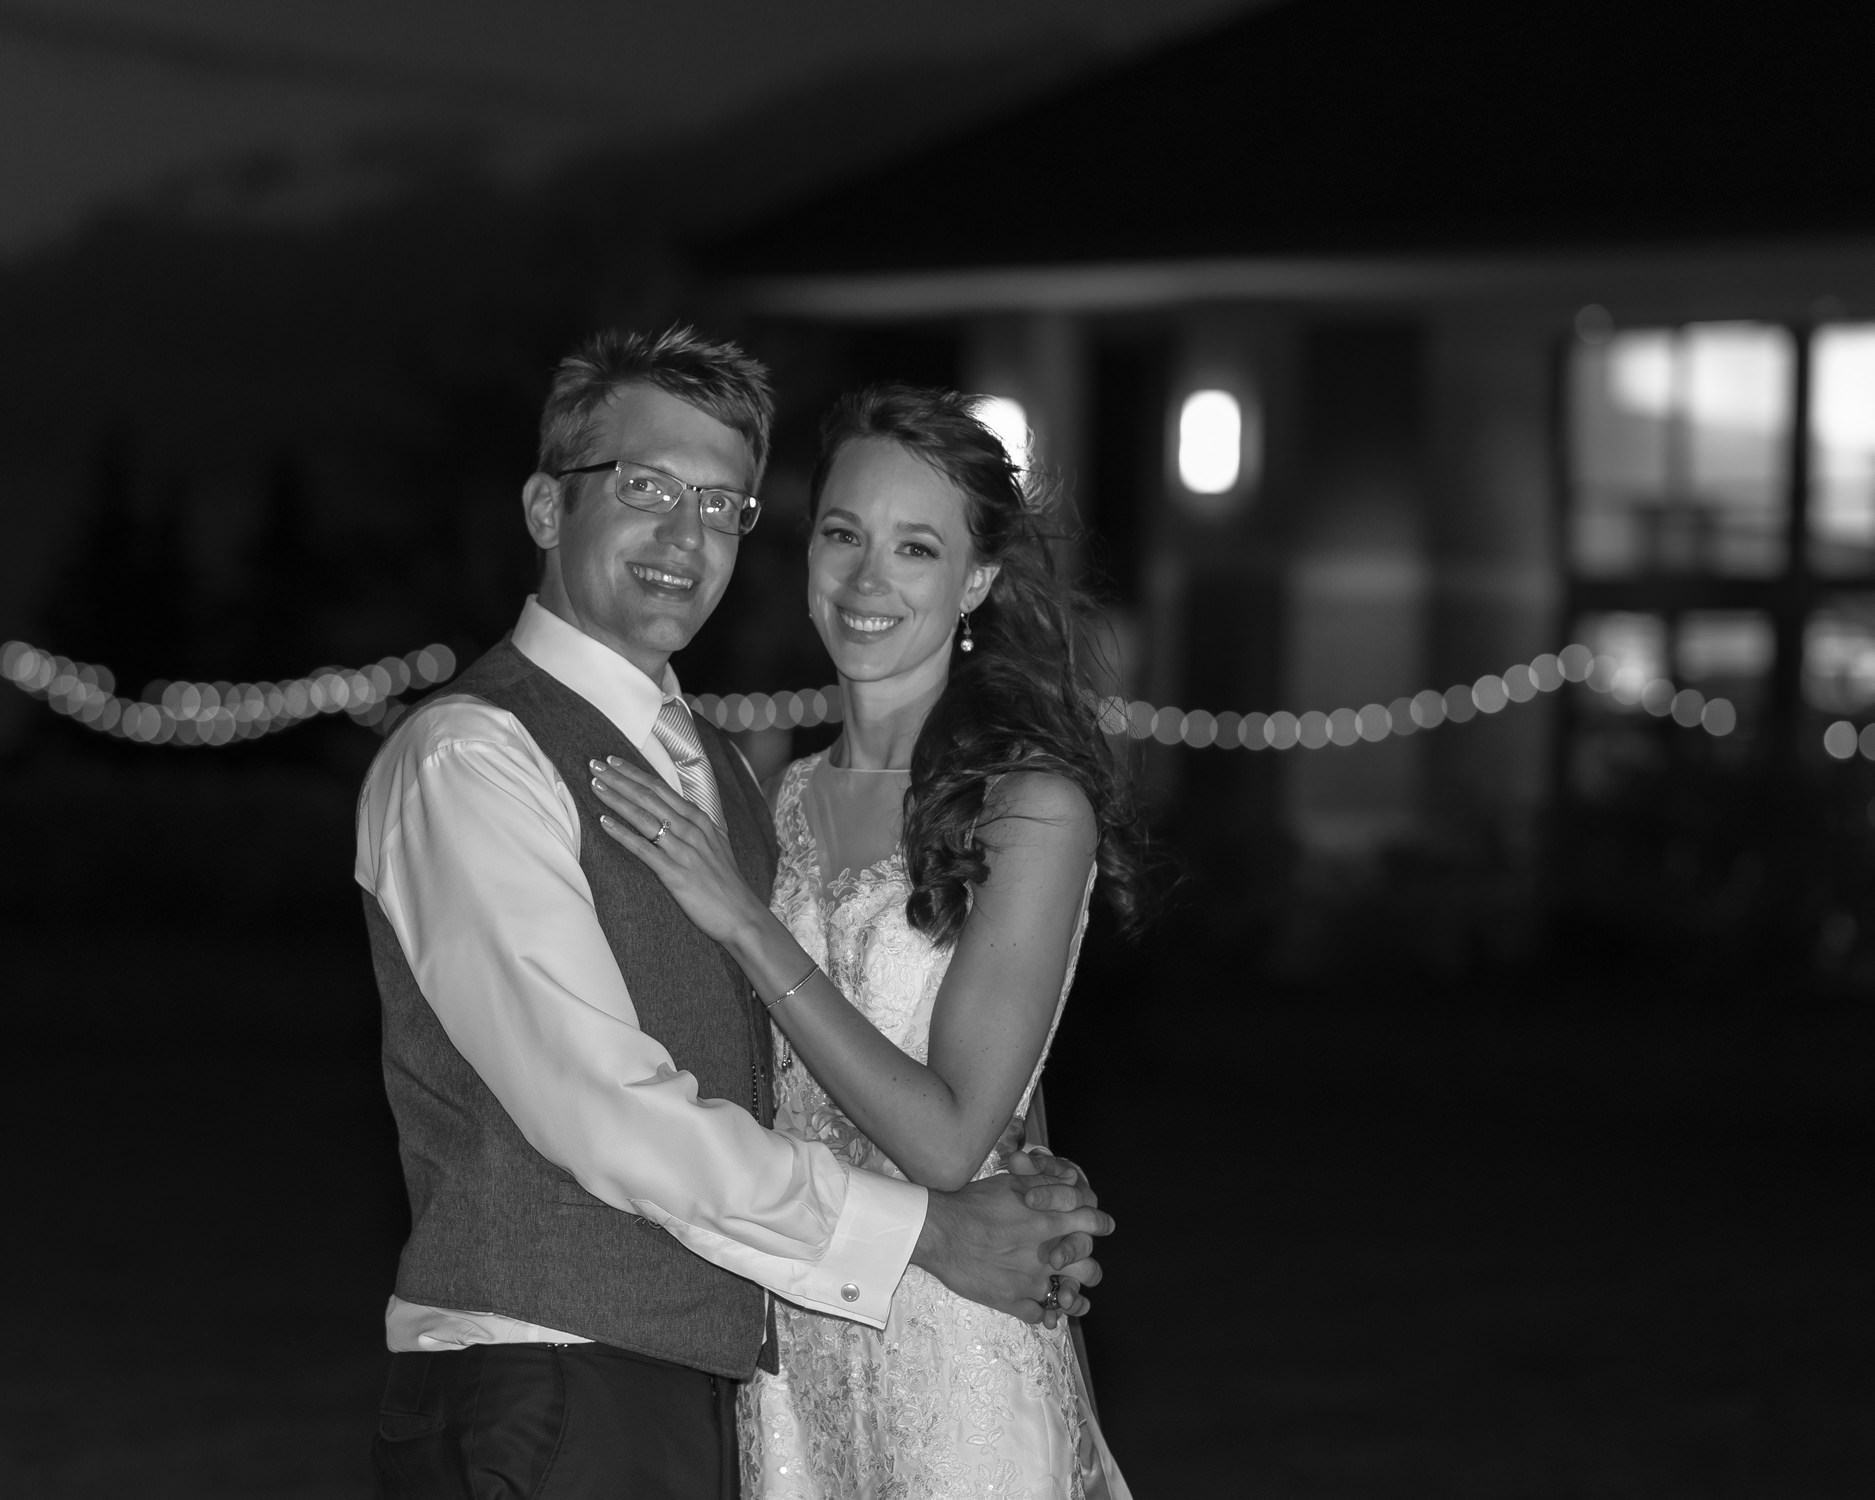 Bride And Groom Outside Reception With Lights